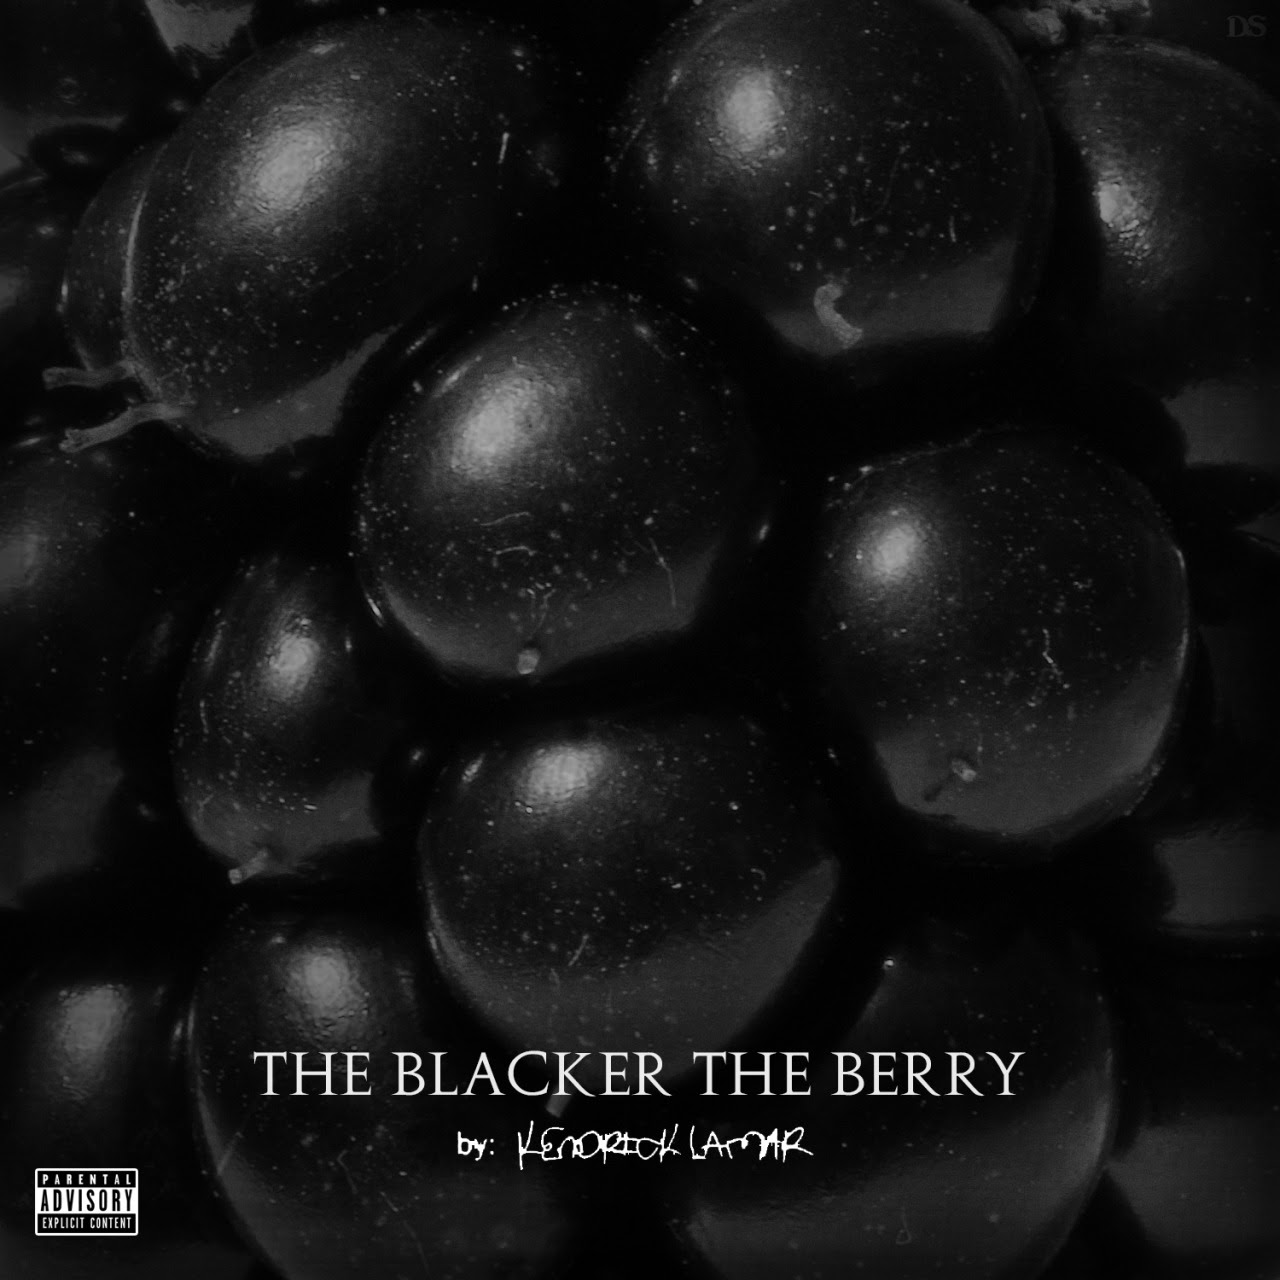 Kendrick Lamar, The Blacker The Berry (single cover art), To Pimp A Butterfly (2015) #Kendrick #Lamar